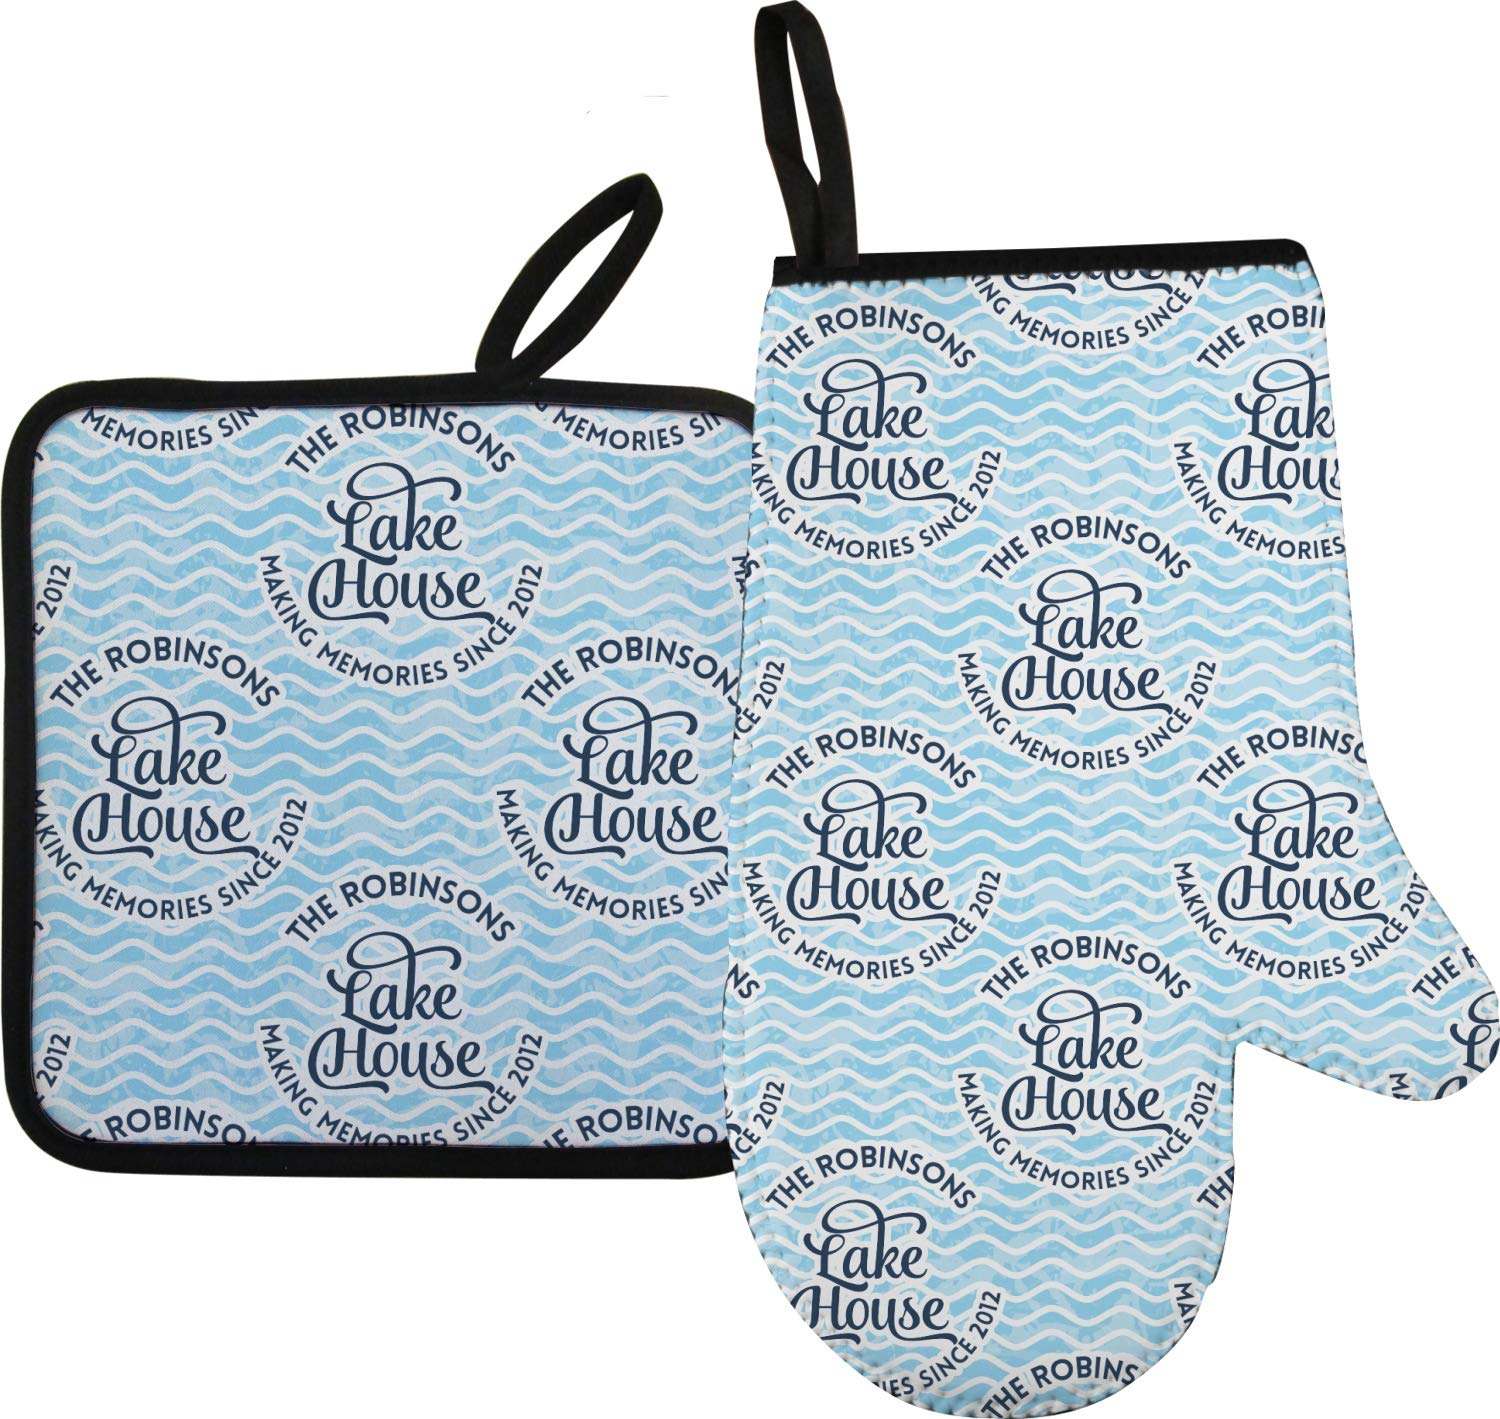 RNK Shops Lake House #2 Oven Mitt & Pot Holder (Personalized)